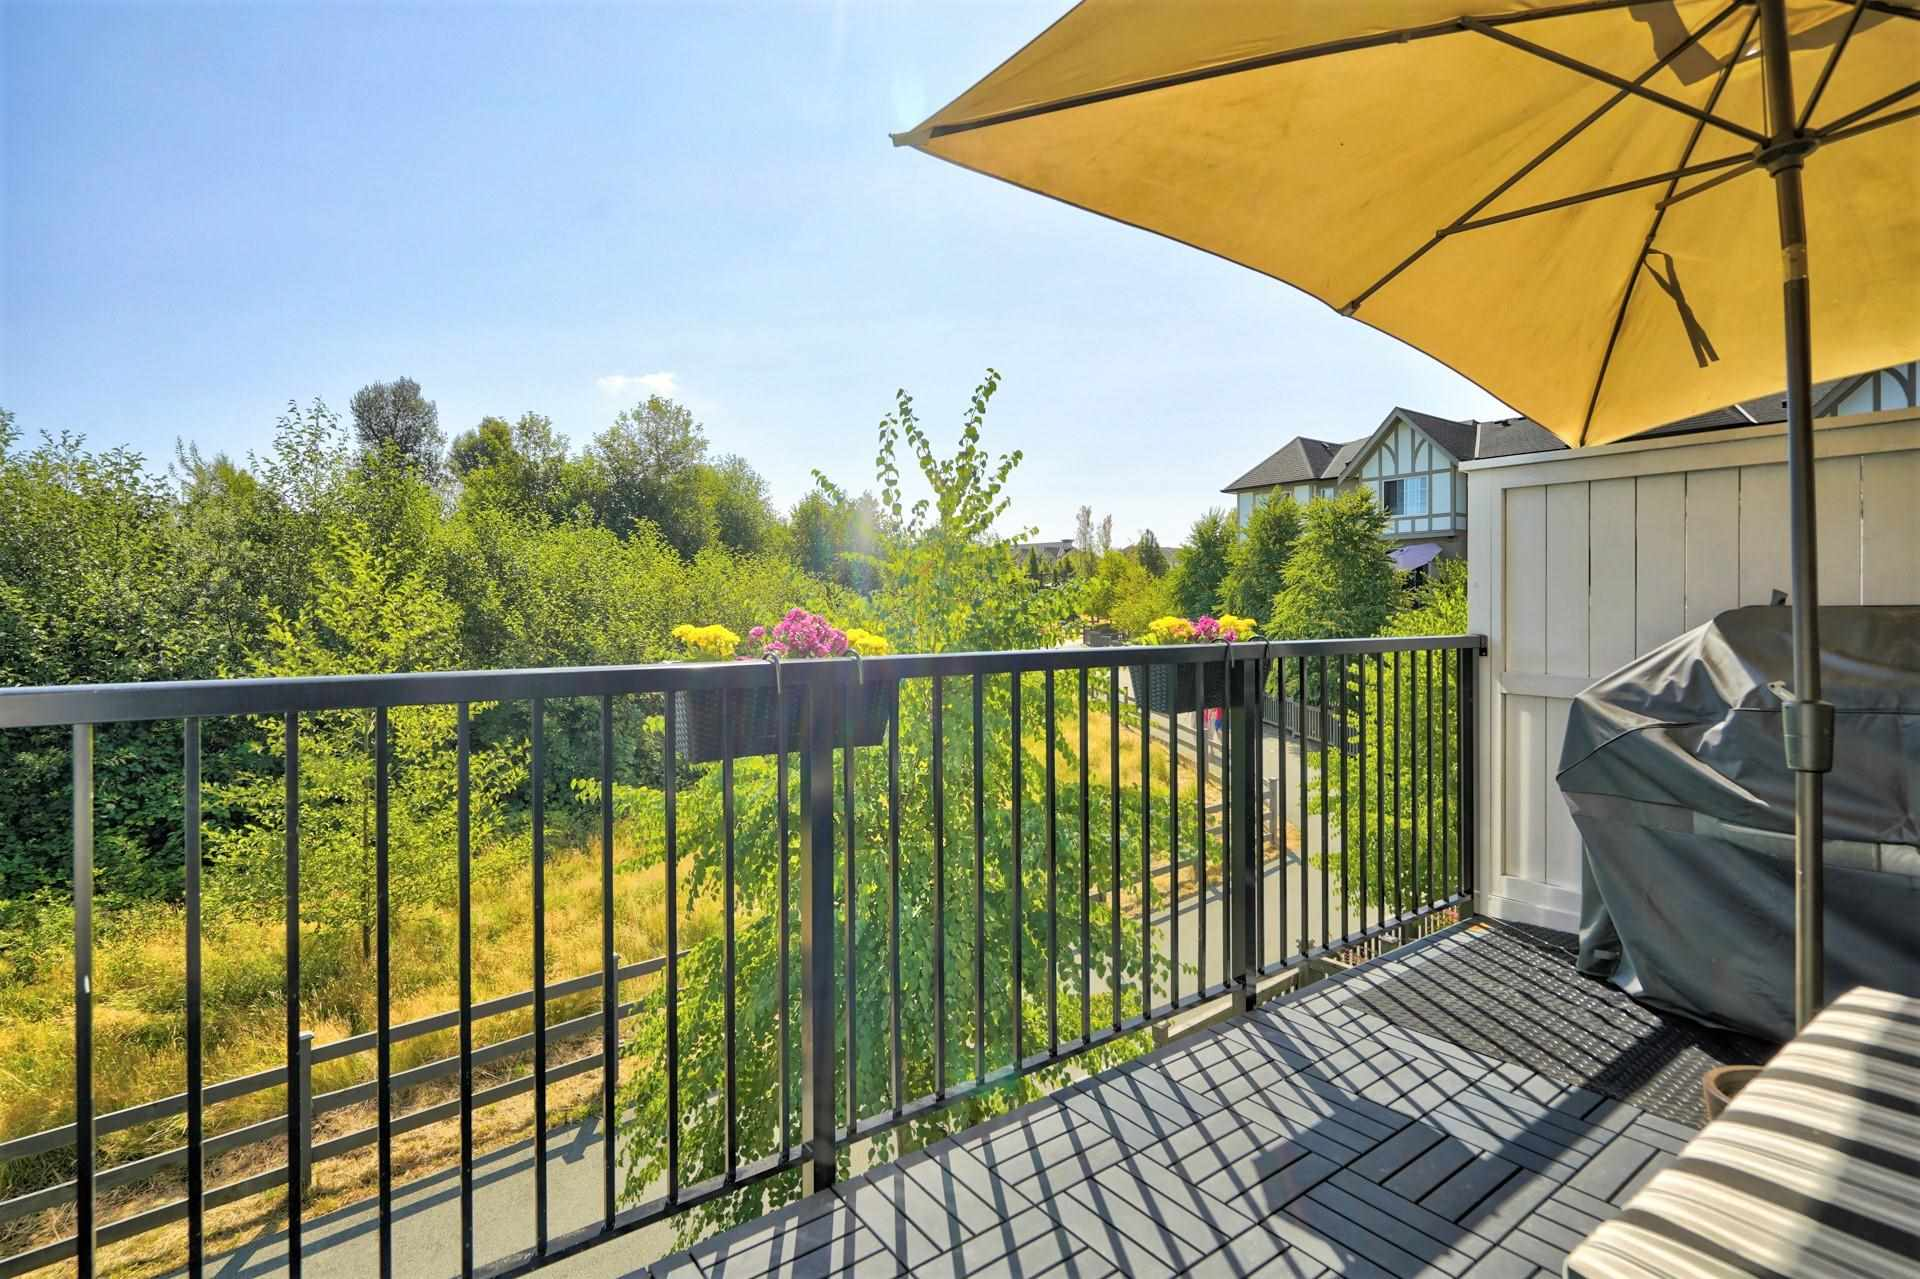 44 30989 WESTRIDGE PLACE - Abbotsford West Townhouse for sale, 2 Bedrooms (R2605566) - #1